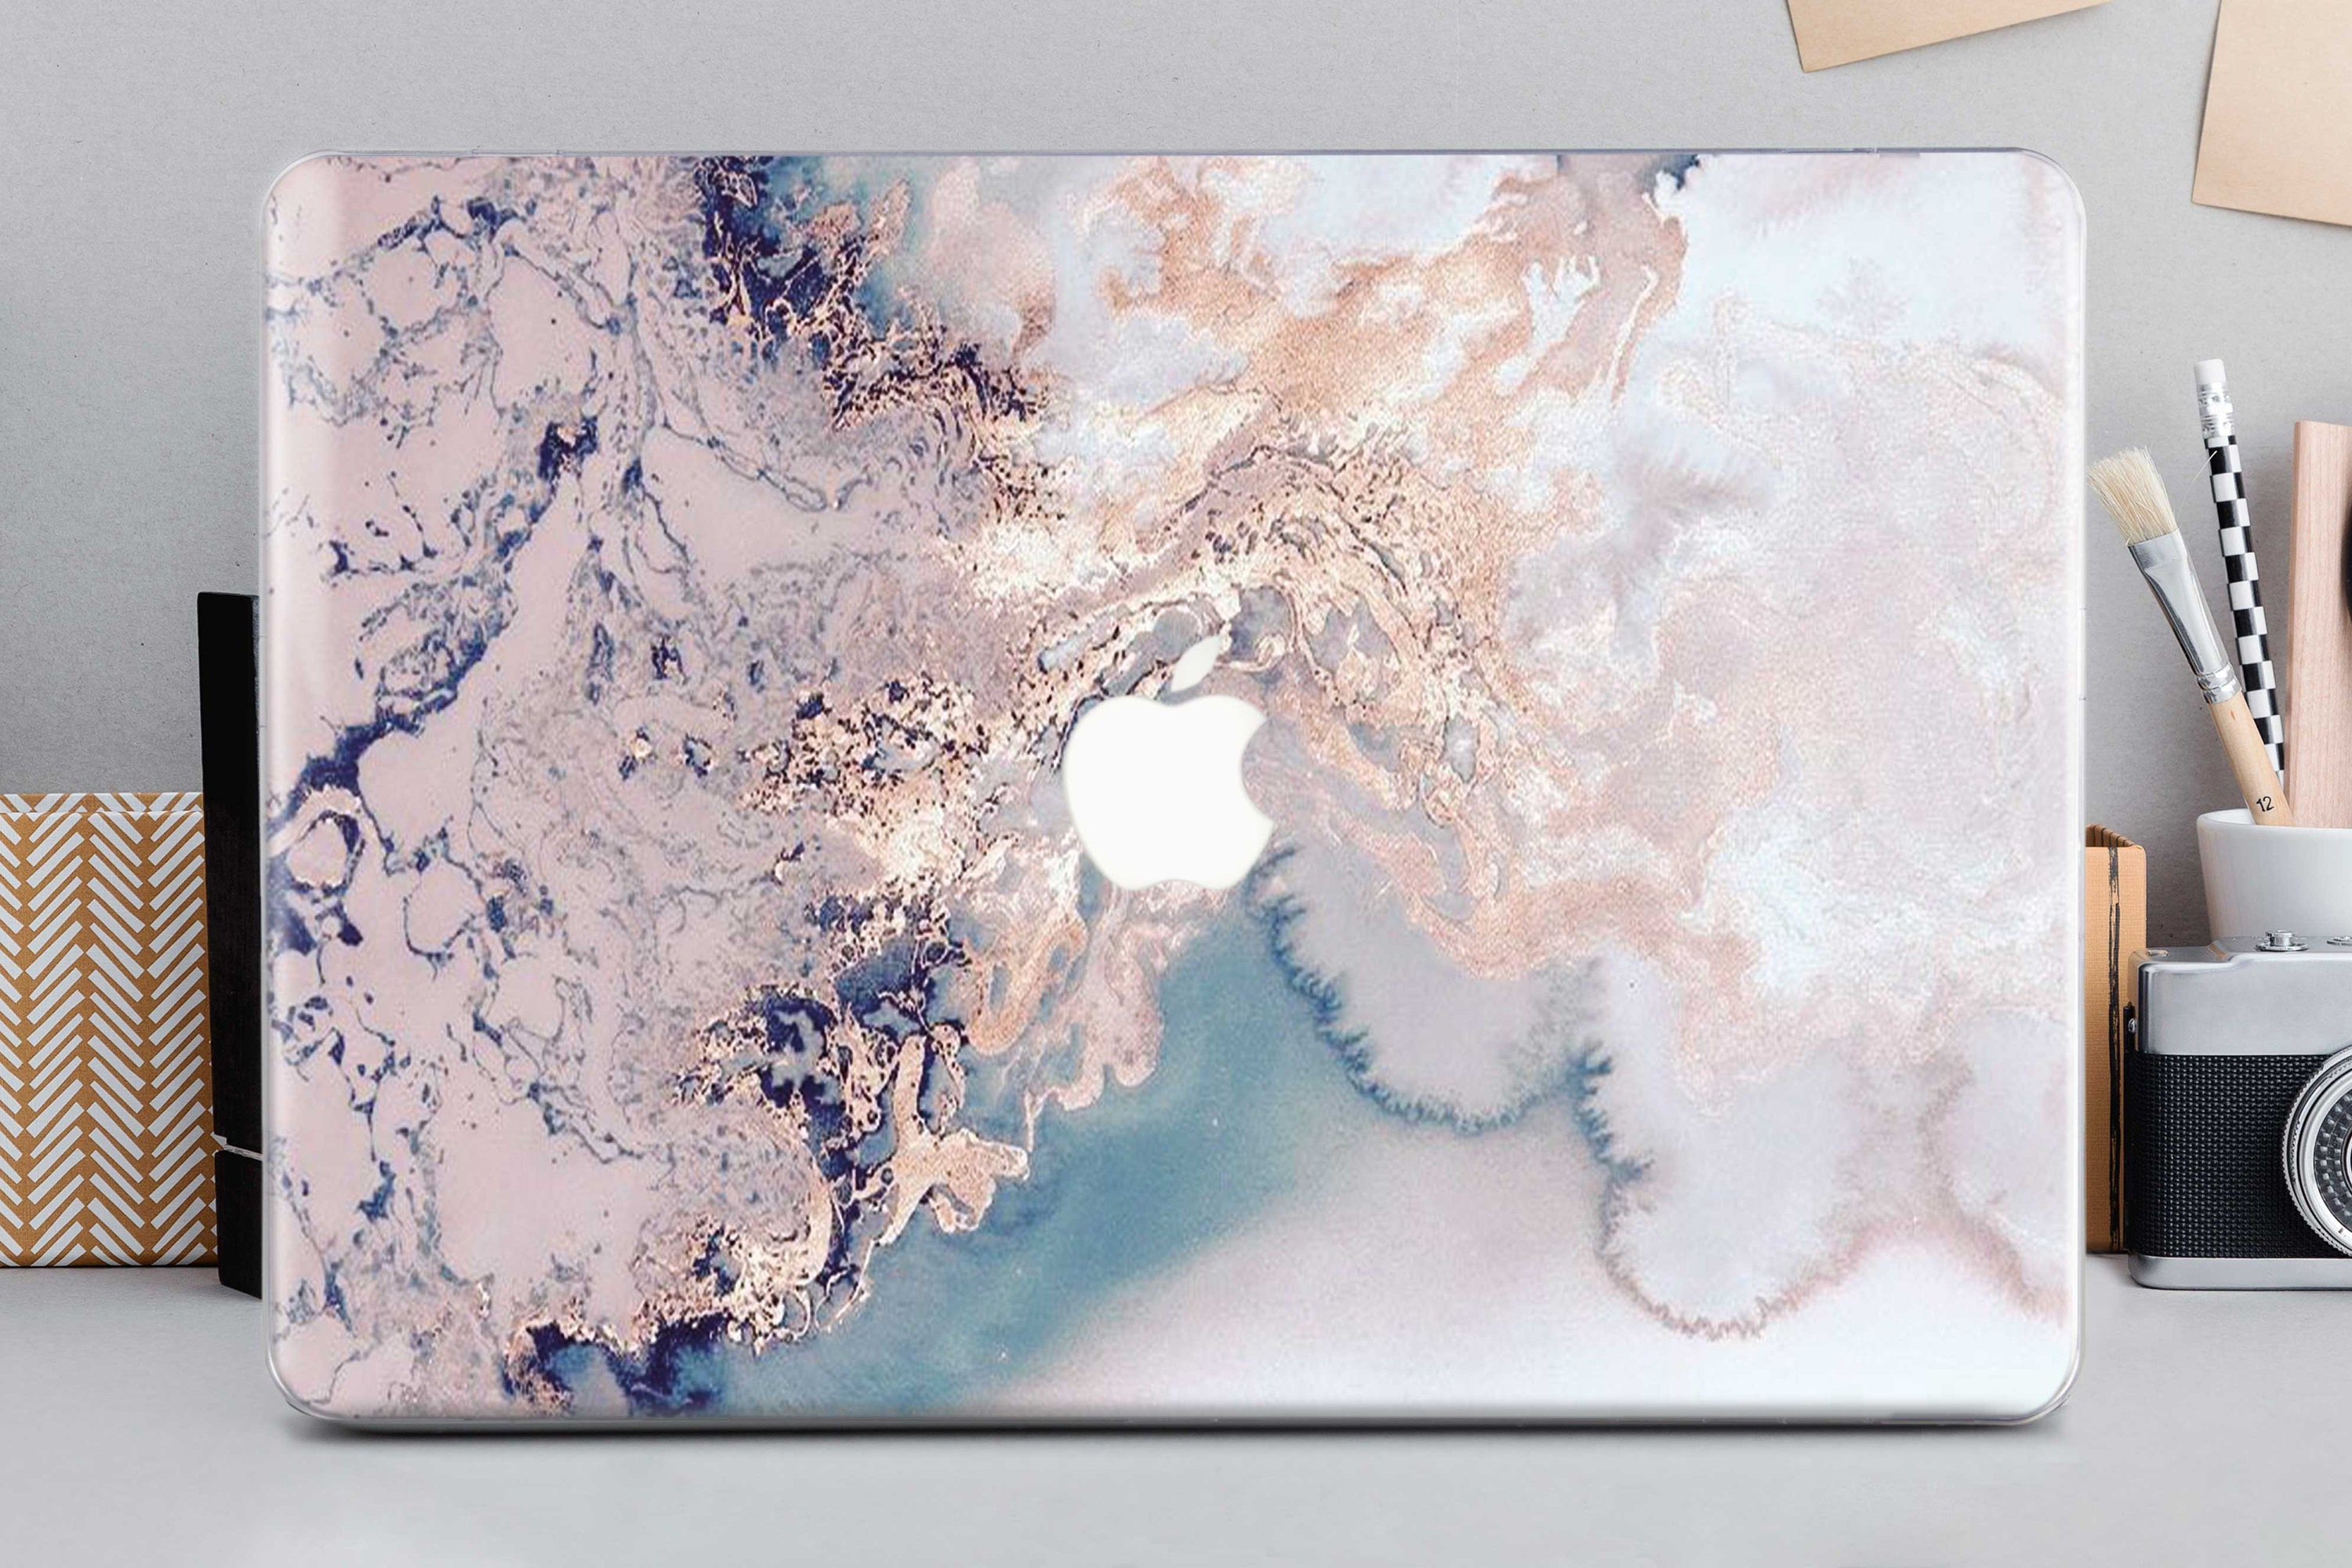 Best Wallpaper Marble Macbook Air - il_fullxfull  Perfect Image Reference_8214.jpg?version\u003d0